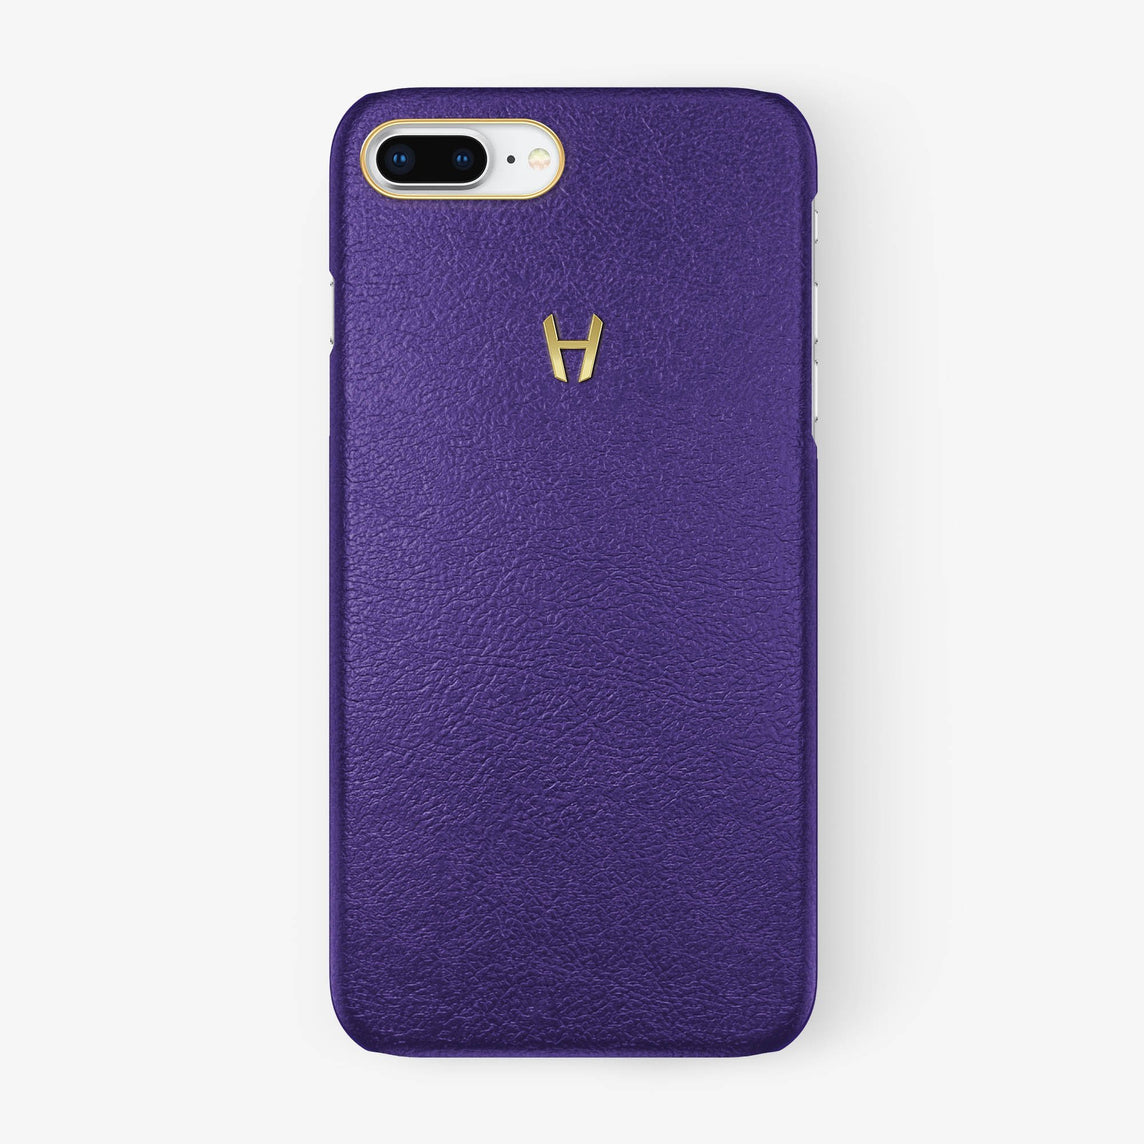 Calfskin Case iPhone 7/8 Plus | Purple - Yellow Gold without-personalization